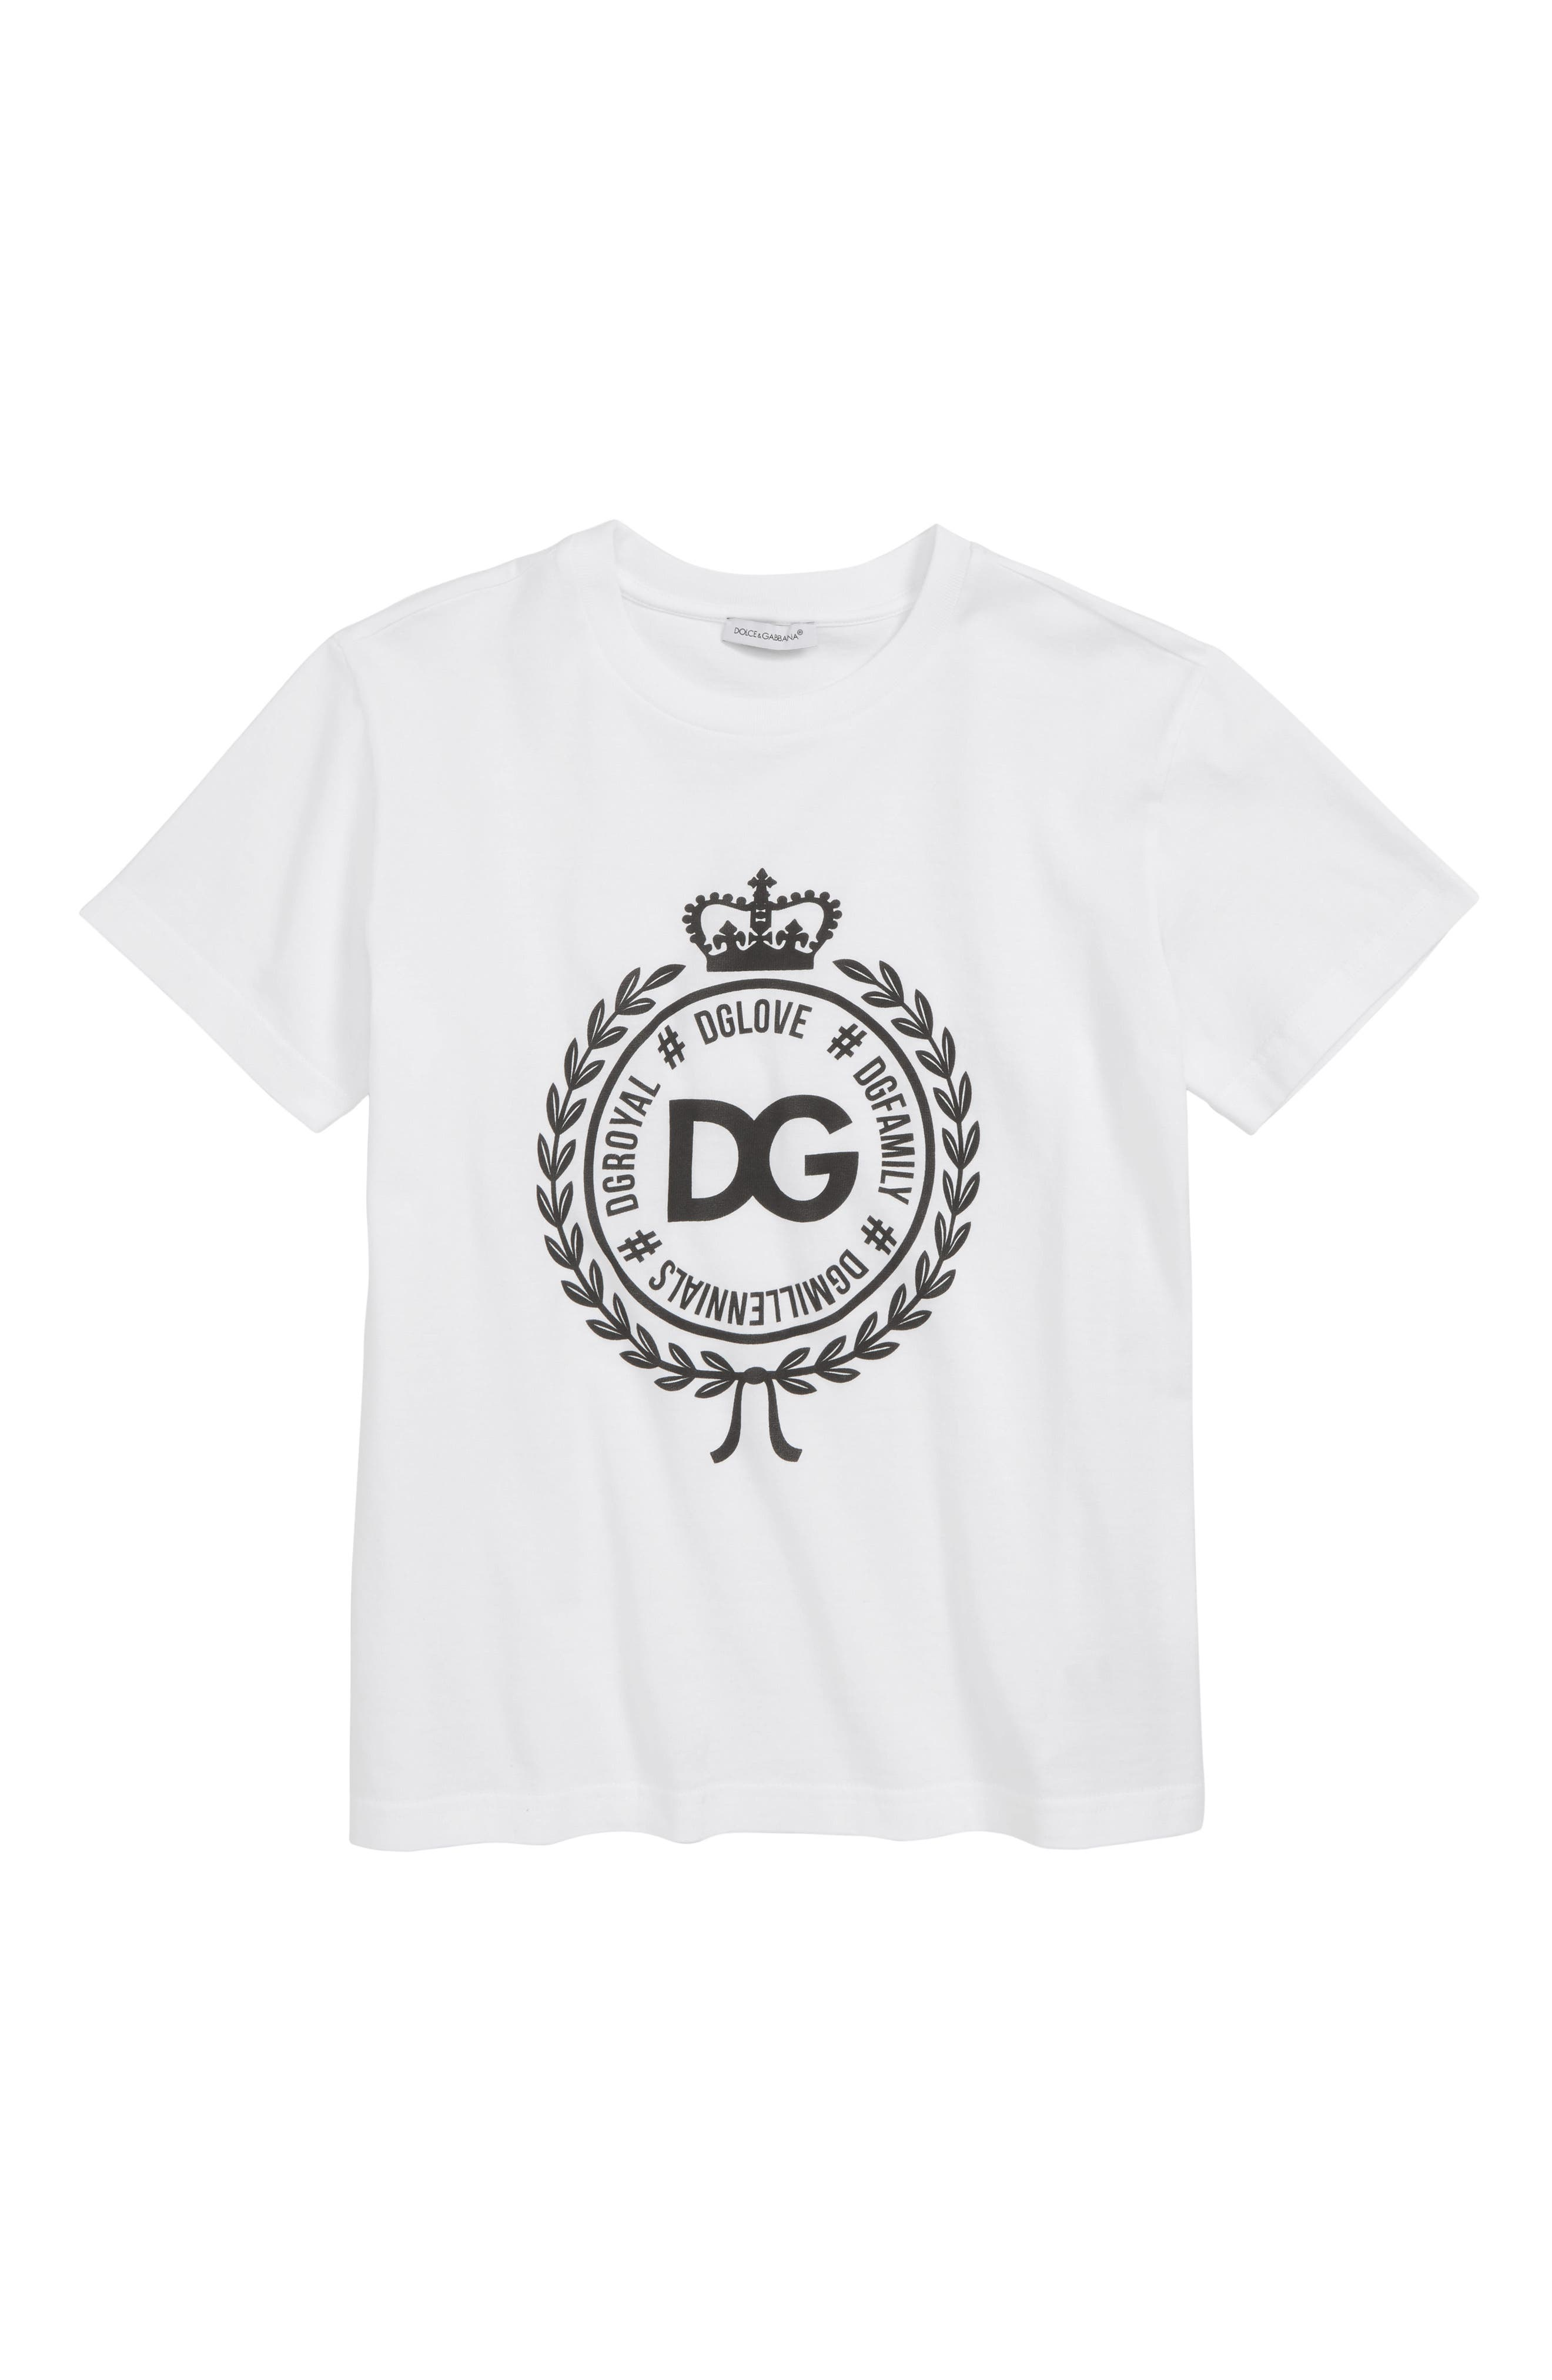 DOLCE&GABBANA, Manica Corta Graphic T-Shirt, Main thumbnail 1, color, BIANCO OTTICO